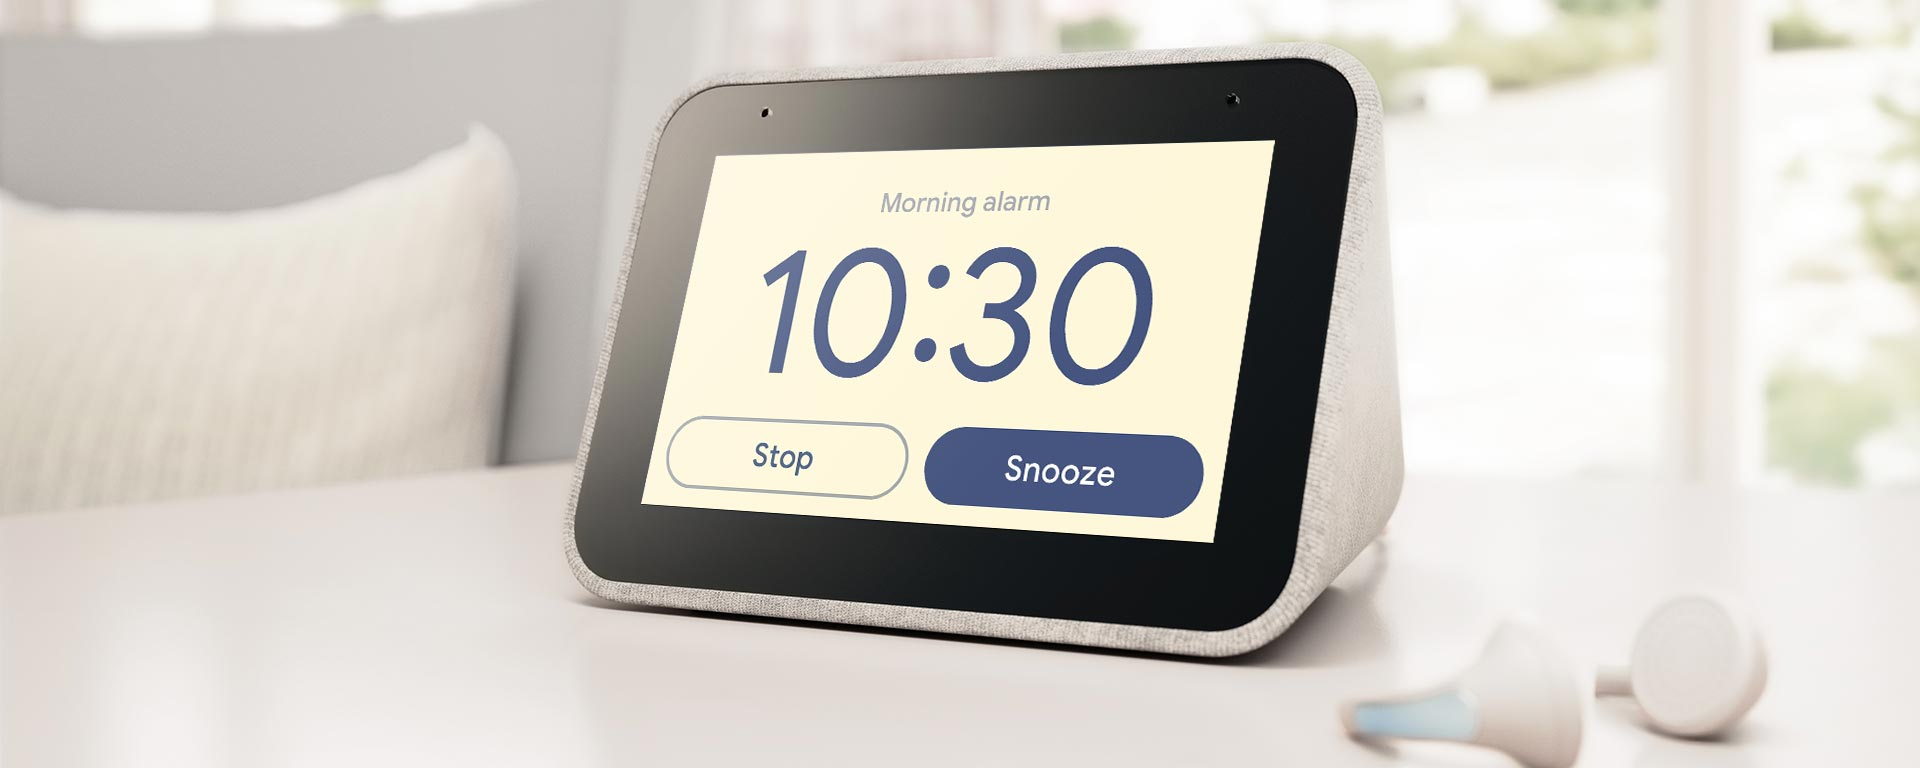 lenovo smart clock morning alarm